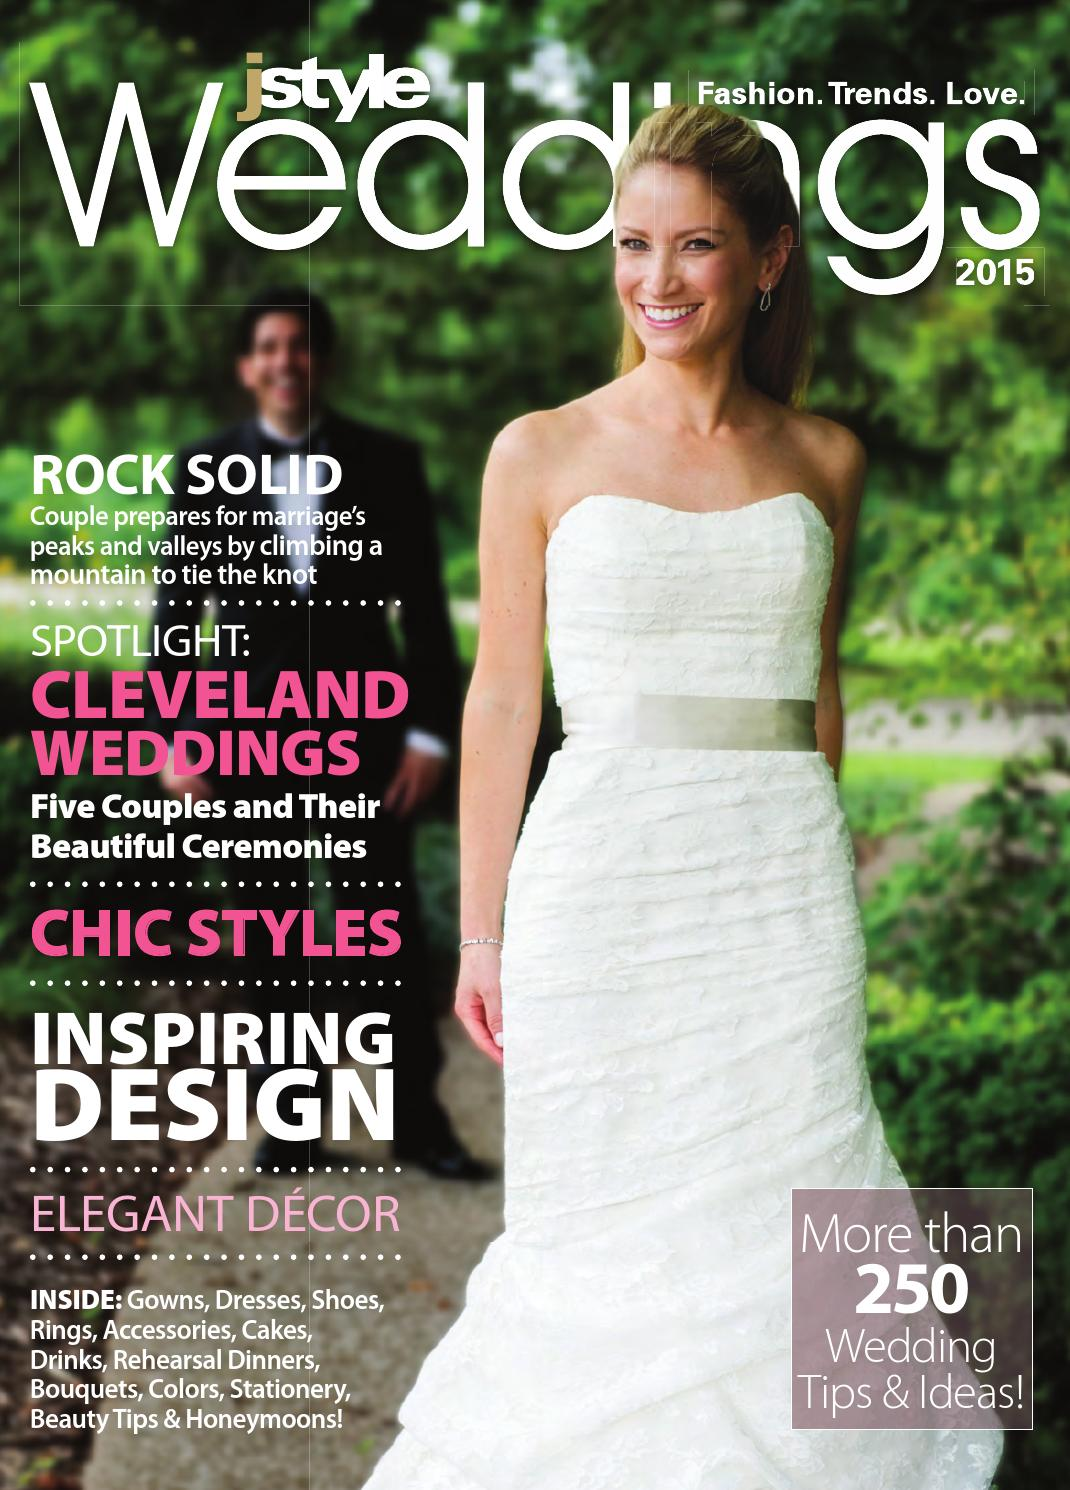 Jstyle Weddings 2015 by Cleveland Jewish Publication Company - issuu